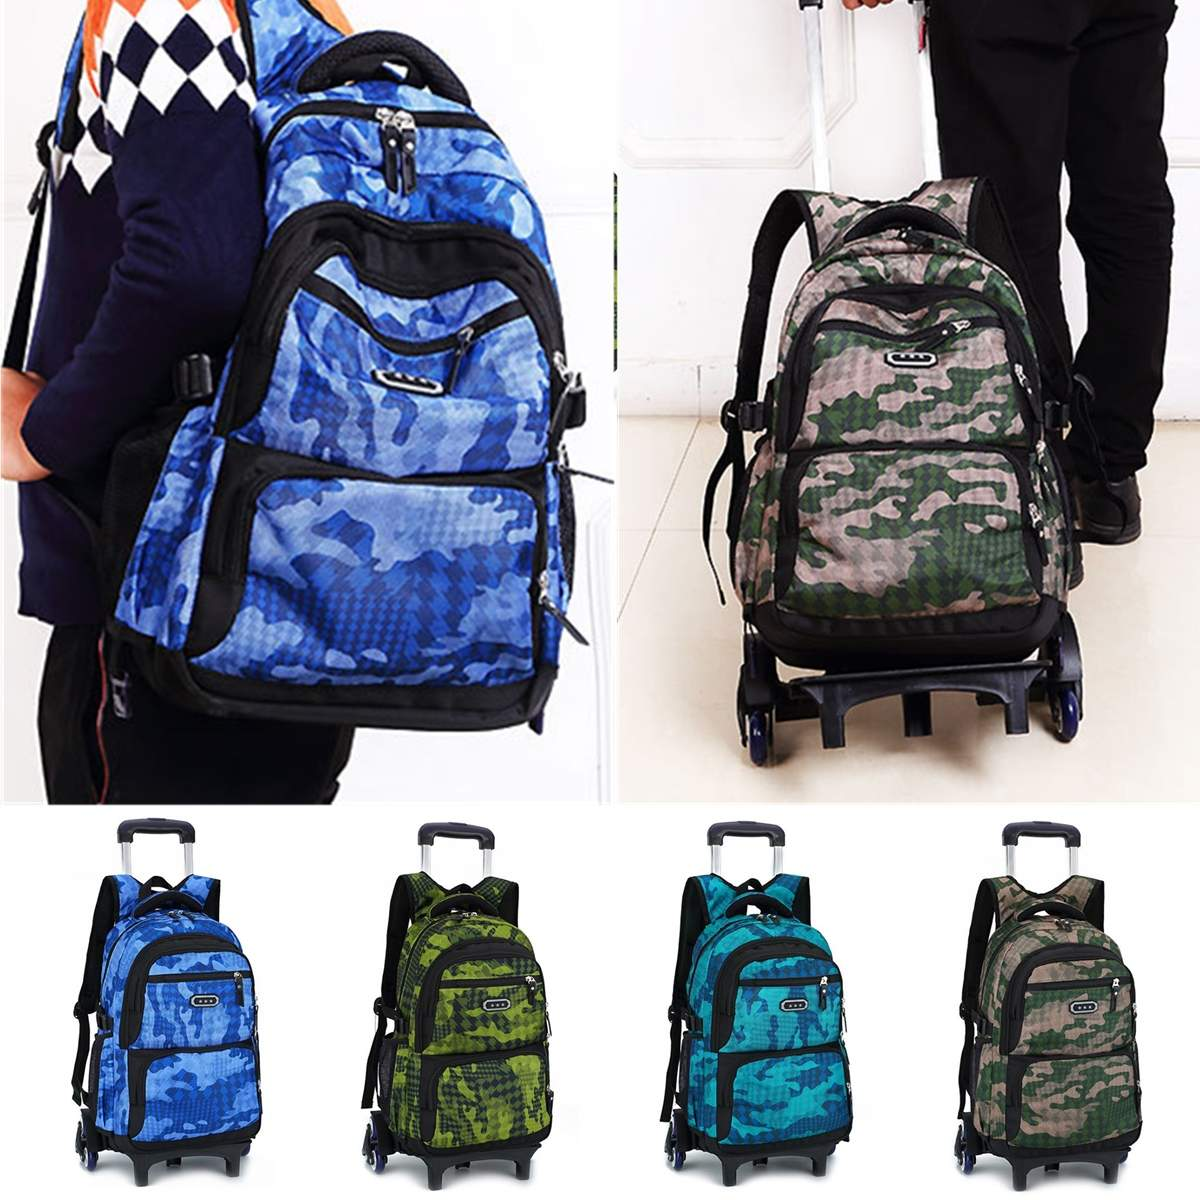 29L Men Nylon Travel Trolley Luggage Bags Travel Trolley Rolling Bags Women Wheeled Backpacks Business Luggage Suitcase On Wheel